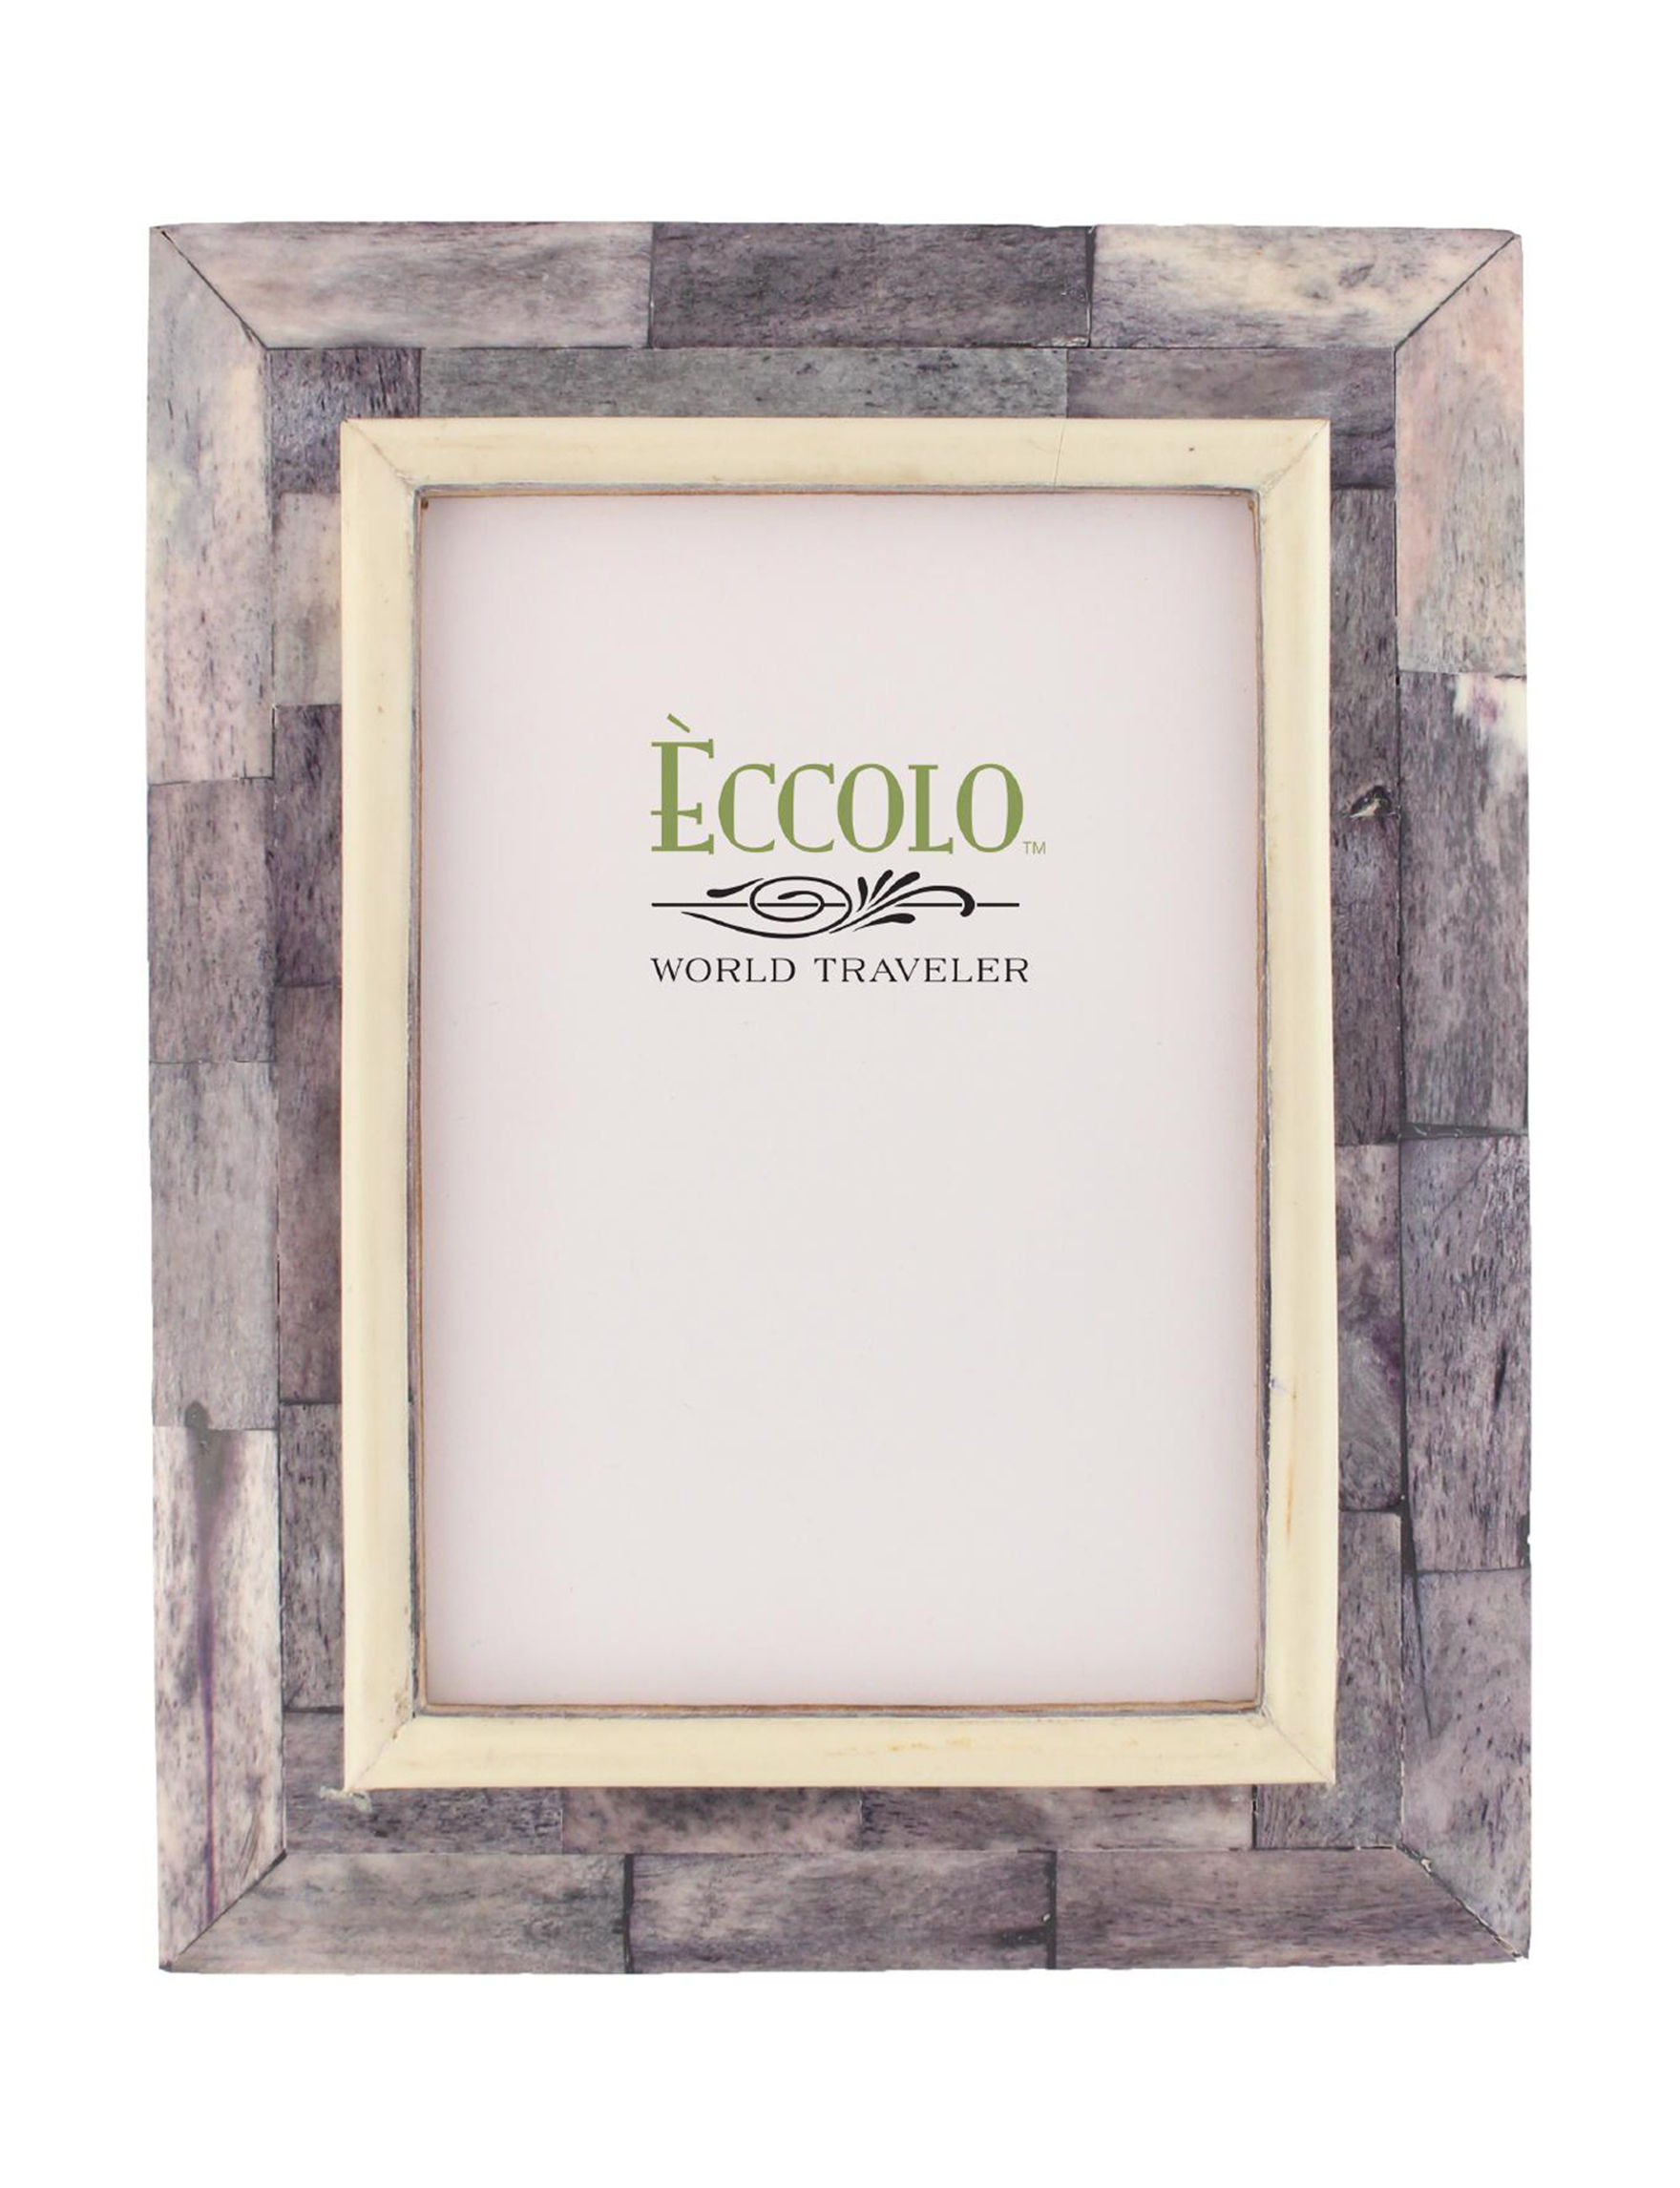 Eccolo Slate Frames & Shadow Boxes Home Accents